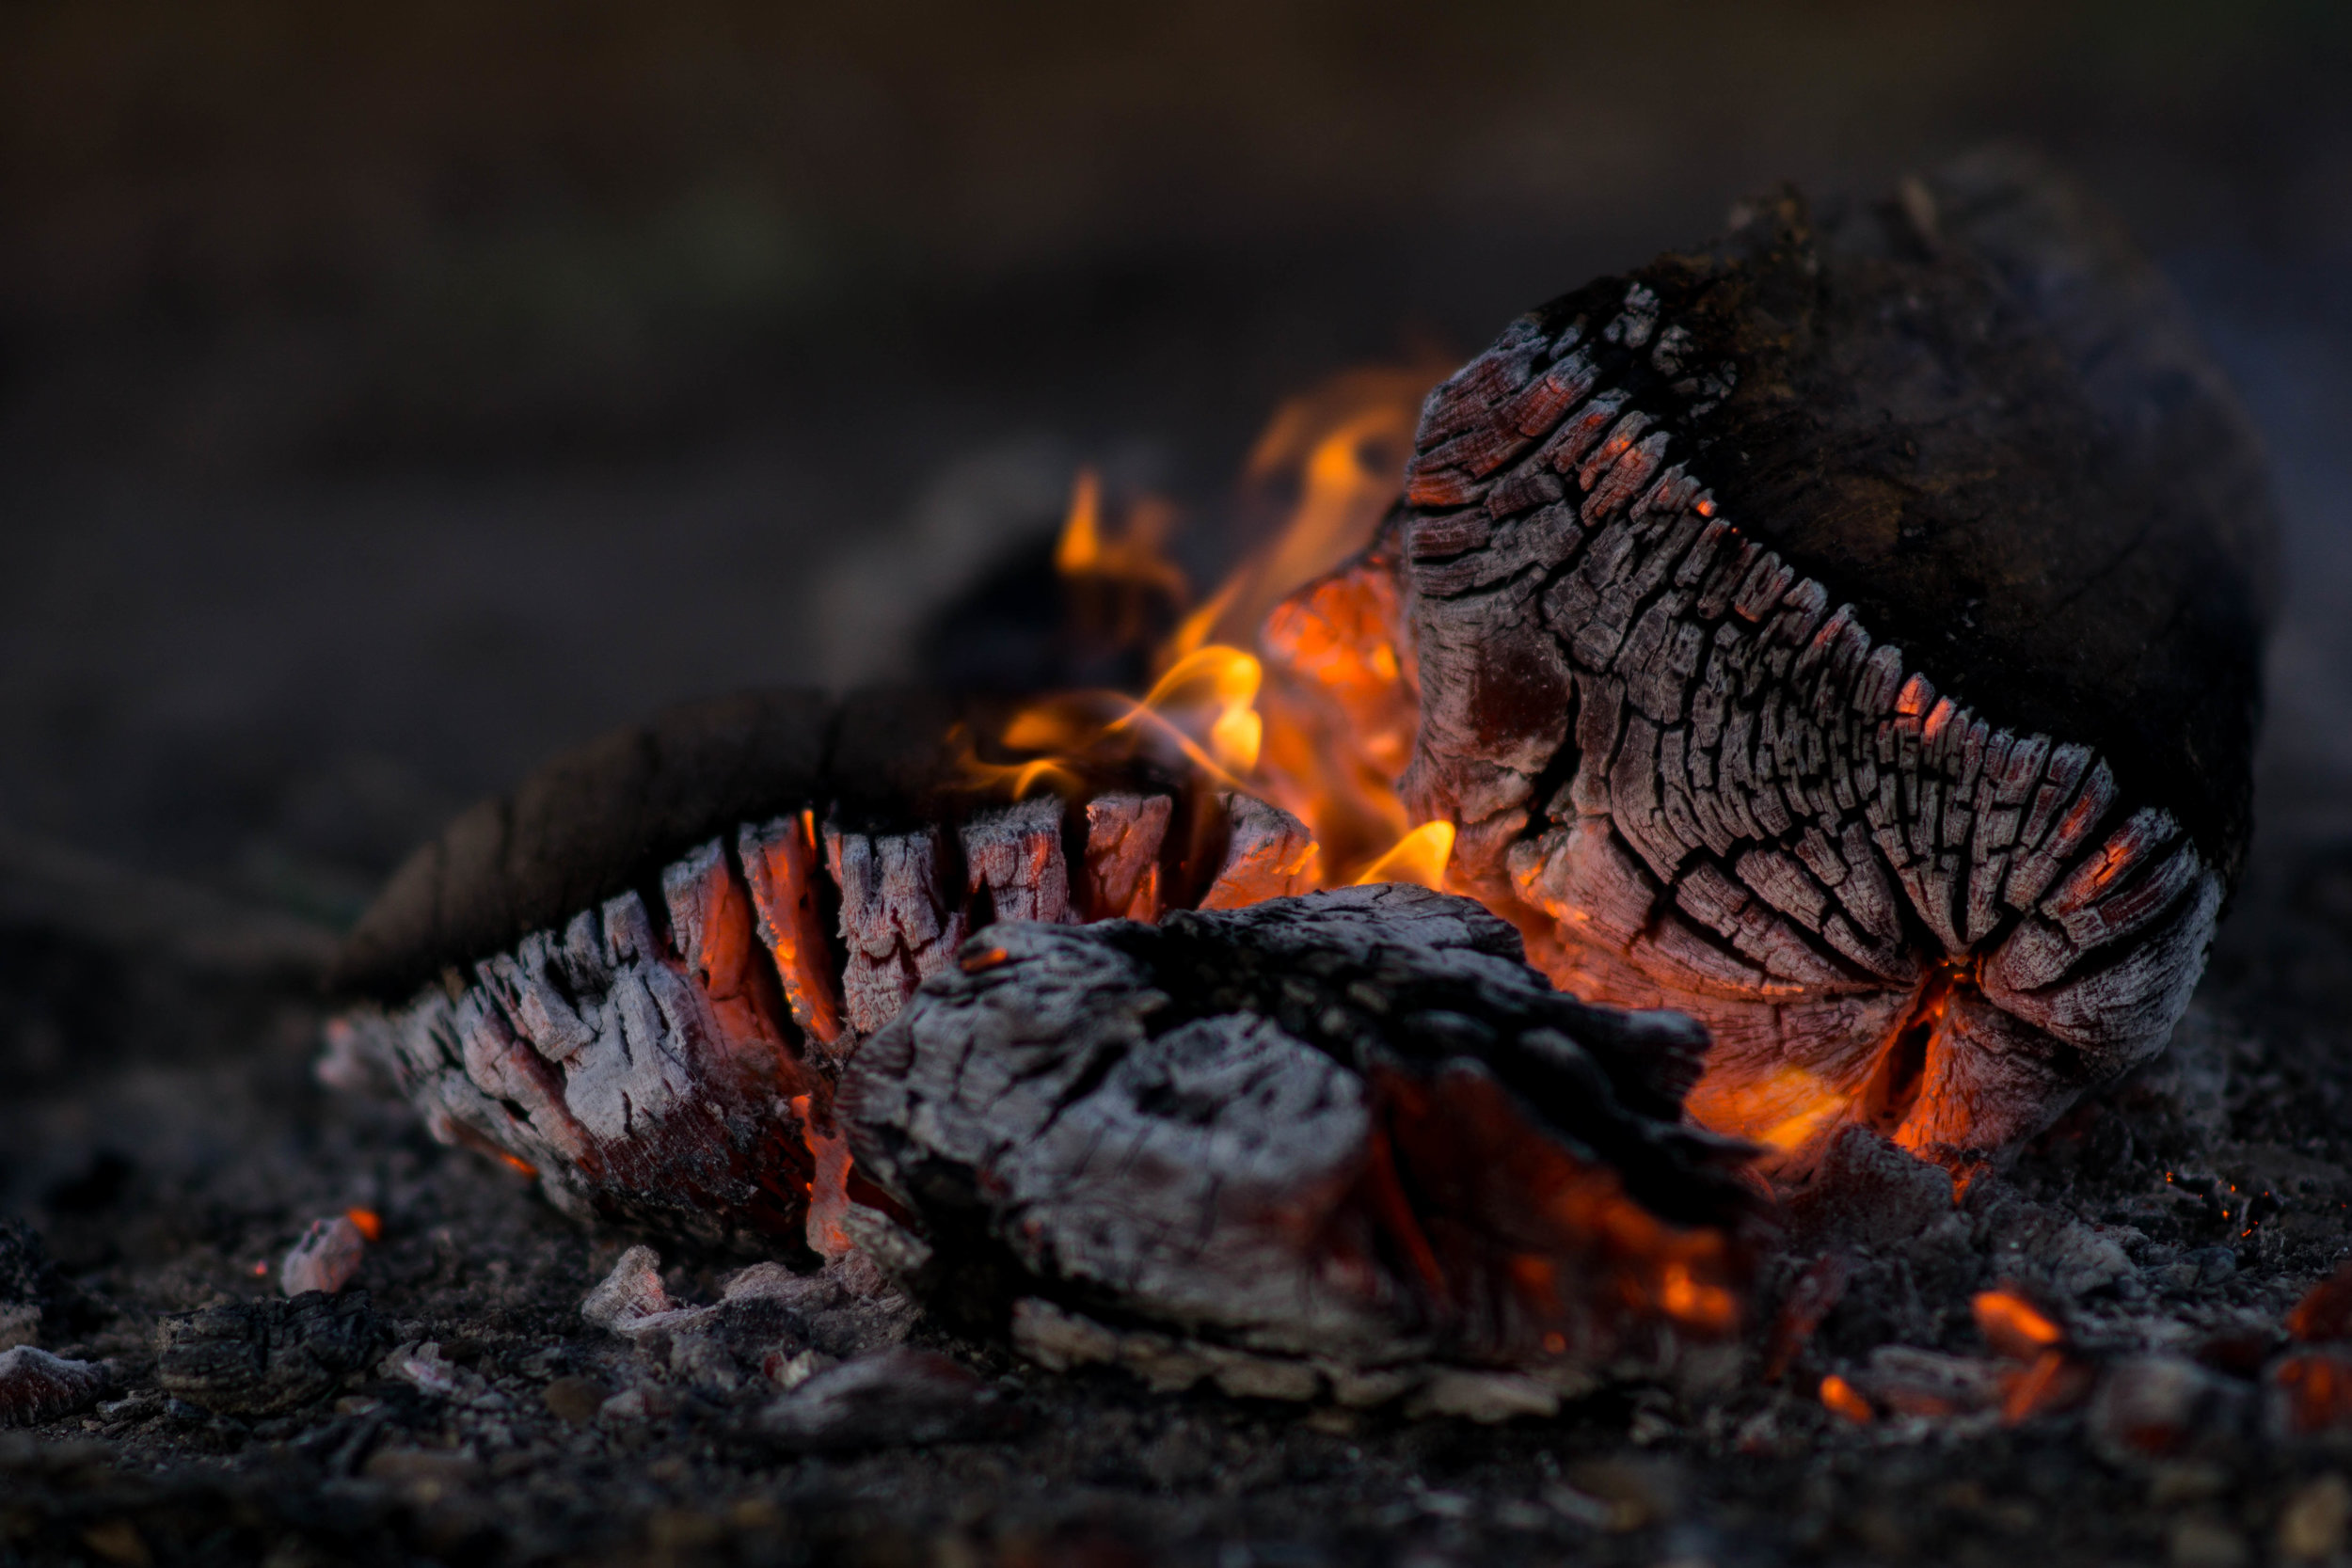 Once the fire has accomplished its work, once the impurities come to the surface causing me to repent of those things, they are removed, my faith is refined and God's glory is reflected in yet another area of my life.